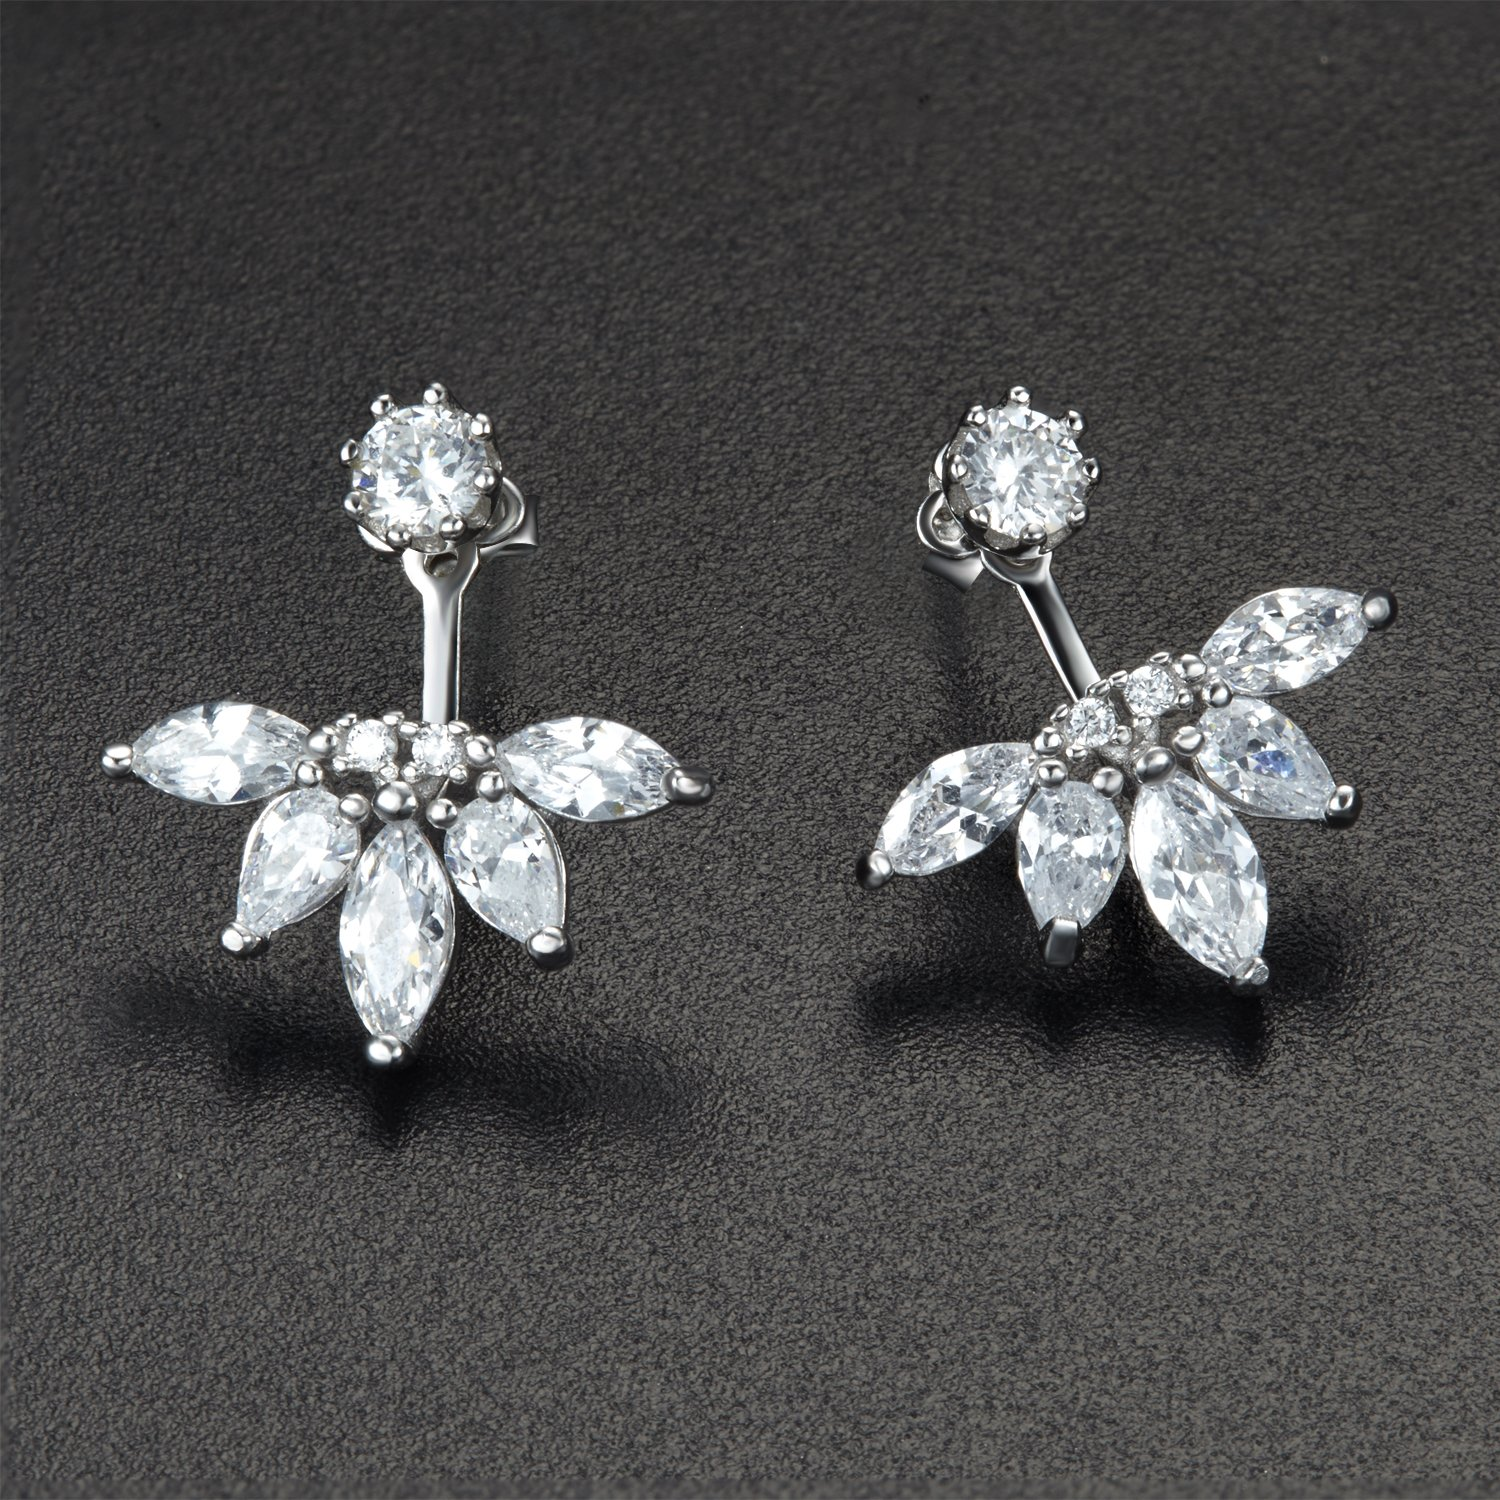 925 Sterling Silver Earrings with Diamonds,DOKINCIK,18K White Gold Plated Clear Crystal Leaf Feather Ear Jacket Earrings Back Cuffs Stud Earring sets for Women Babies and Girls by DOKINCIK (Image #2)